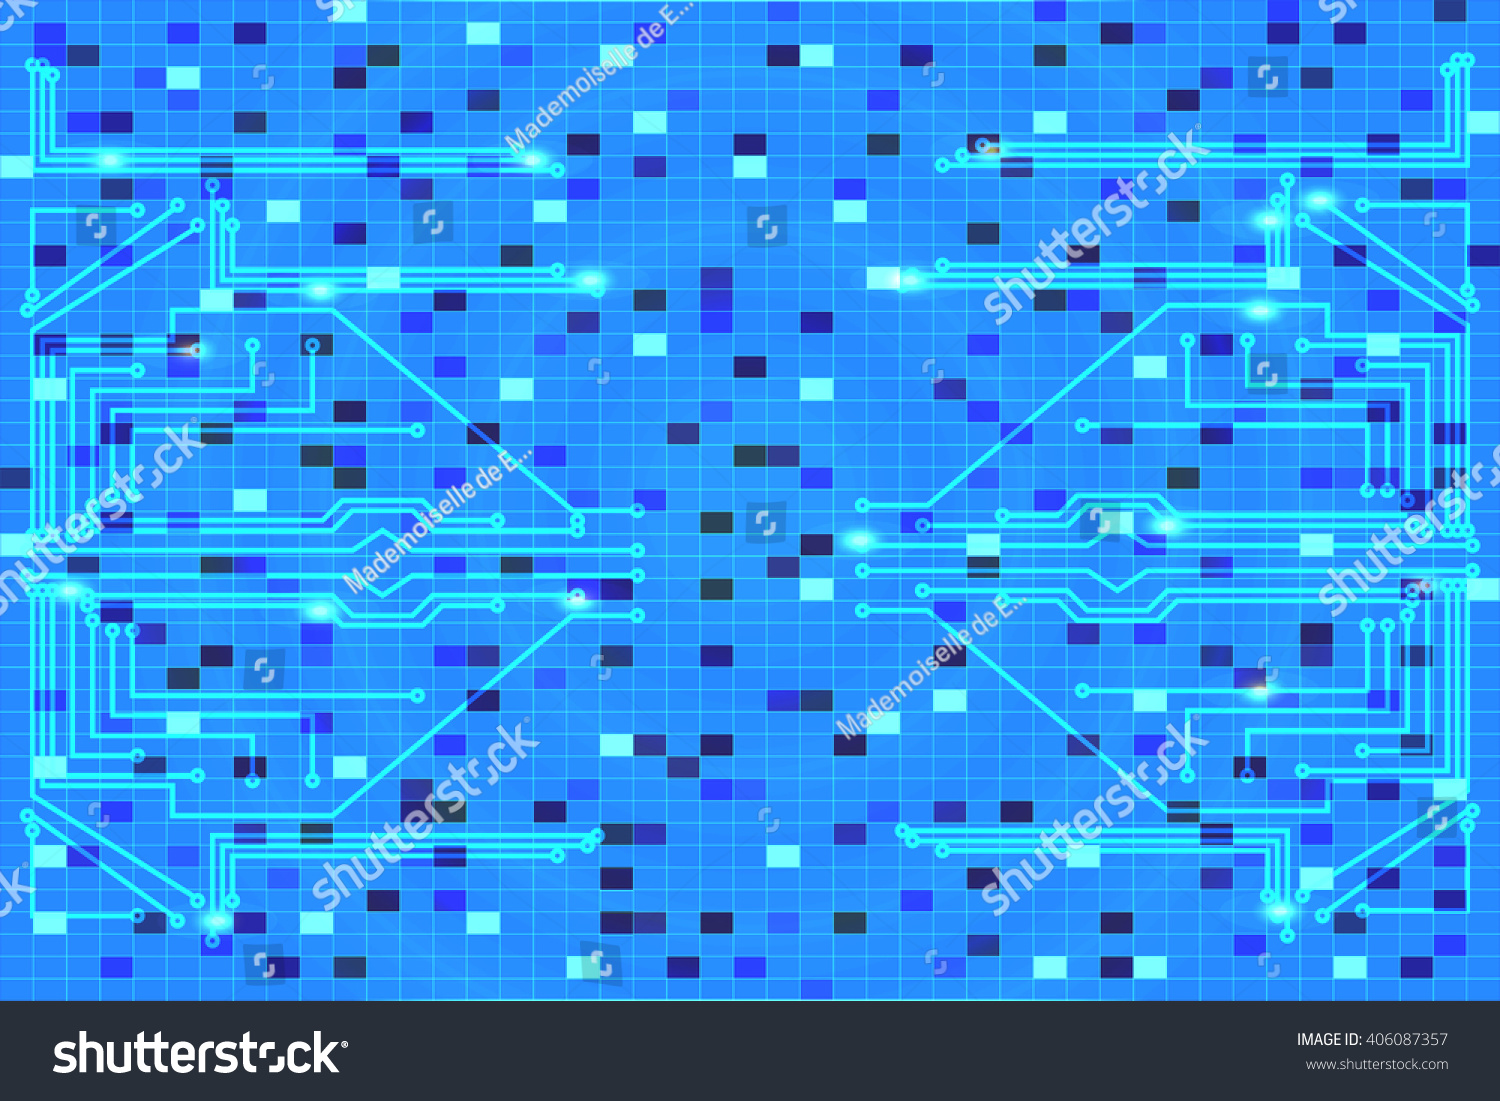 Vector Illustration Background Image On Printed Stock Pics Photos Desktop Wallpapers Circuit Board Pictures The Conductors Gradient For Design